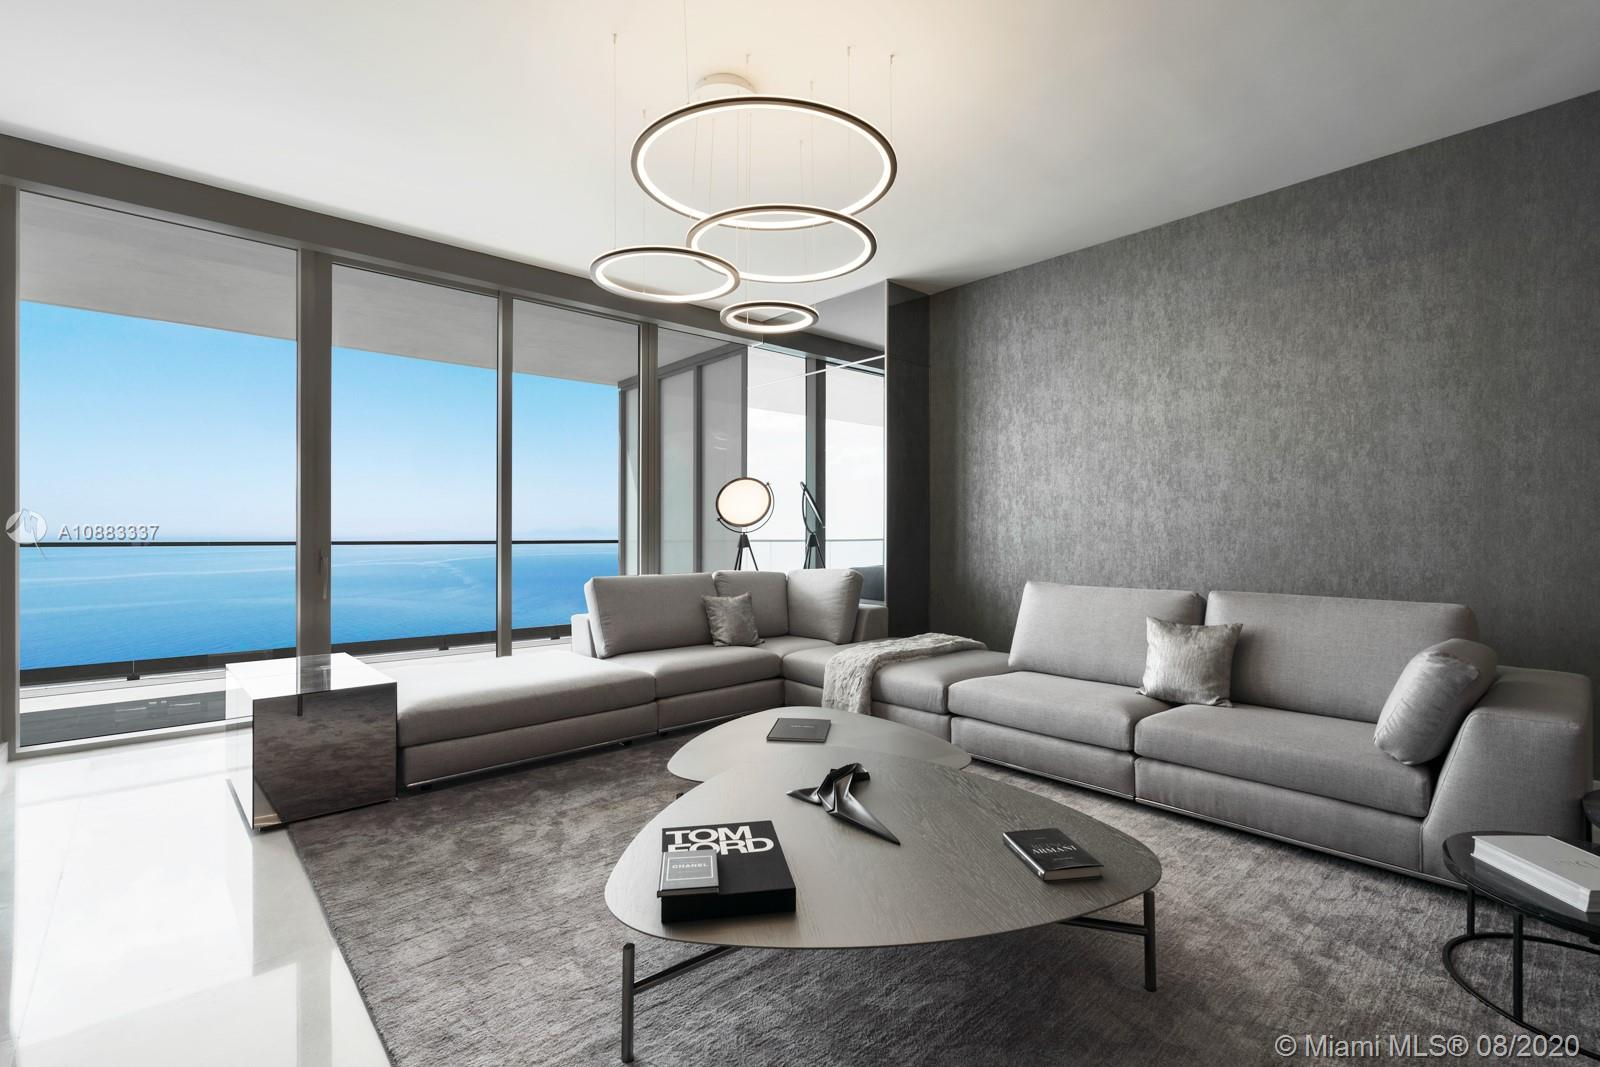 One of the first finished and furnished residences at the one and only Residences by Armani Casa in Sunny Isles Beach. This flow through, brand new 4 bedroom apartment with den and laundry has 5.5 bathrooms and is 4,062 sq. ft. total. It features gorgeous ocean and city views with two large terraces, floor to ceiling windows, split floor plan, volume ceilings, and summer kitchen on the balcony. Gorgeous finishes, high end furniture and custom lighting throughout with Armani's personal touch. Sophisticated elegance in the most sought after building in Sunny Isles. Full service building including Italian Restaurant with room service, party room, game room, 2 level spa, yoga/pilates room, gym, movie theatre, cigar and wine room, kids room, concierge, security, valet, and beach cabanas.